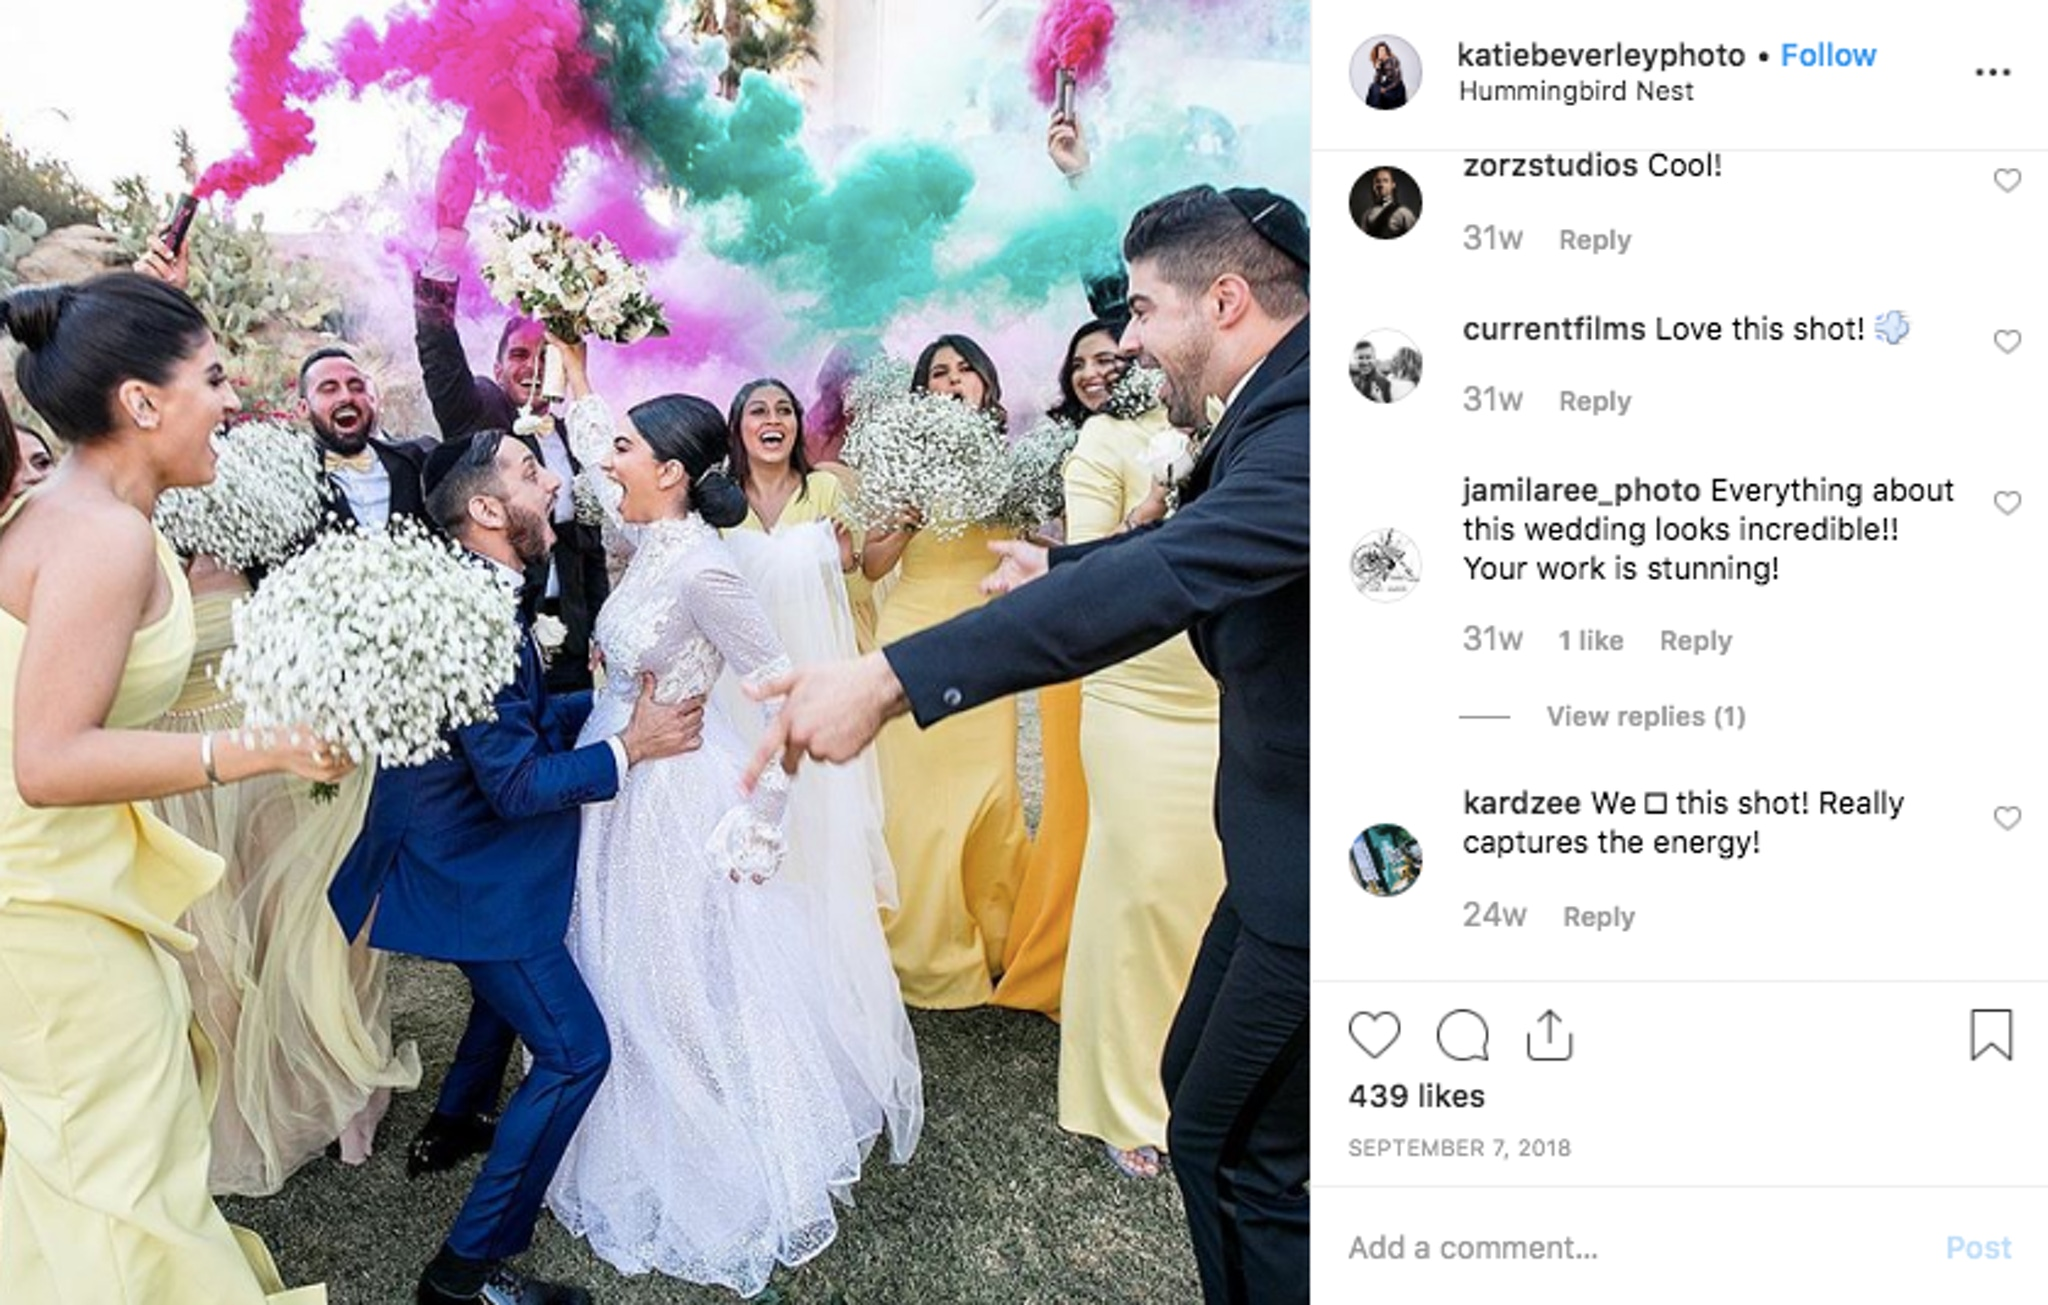 Colorful wedding with guests dancing and beautiful flower bouquets